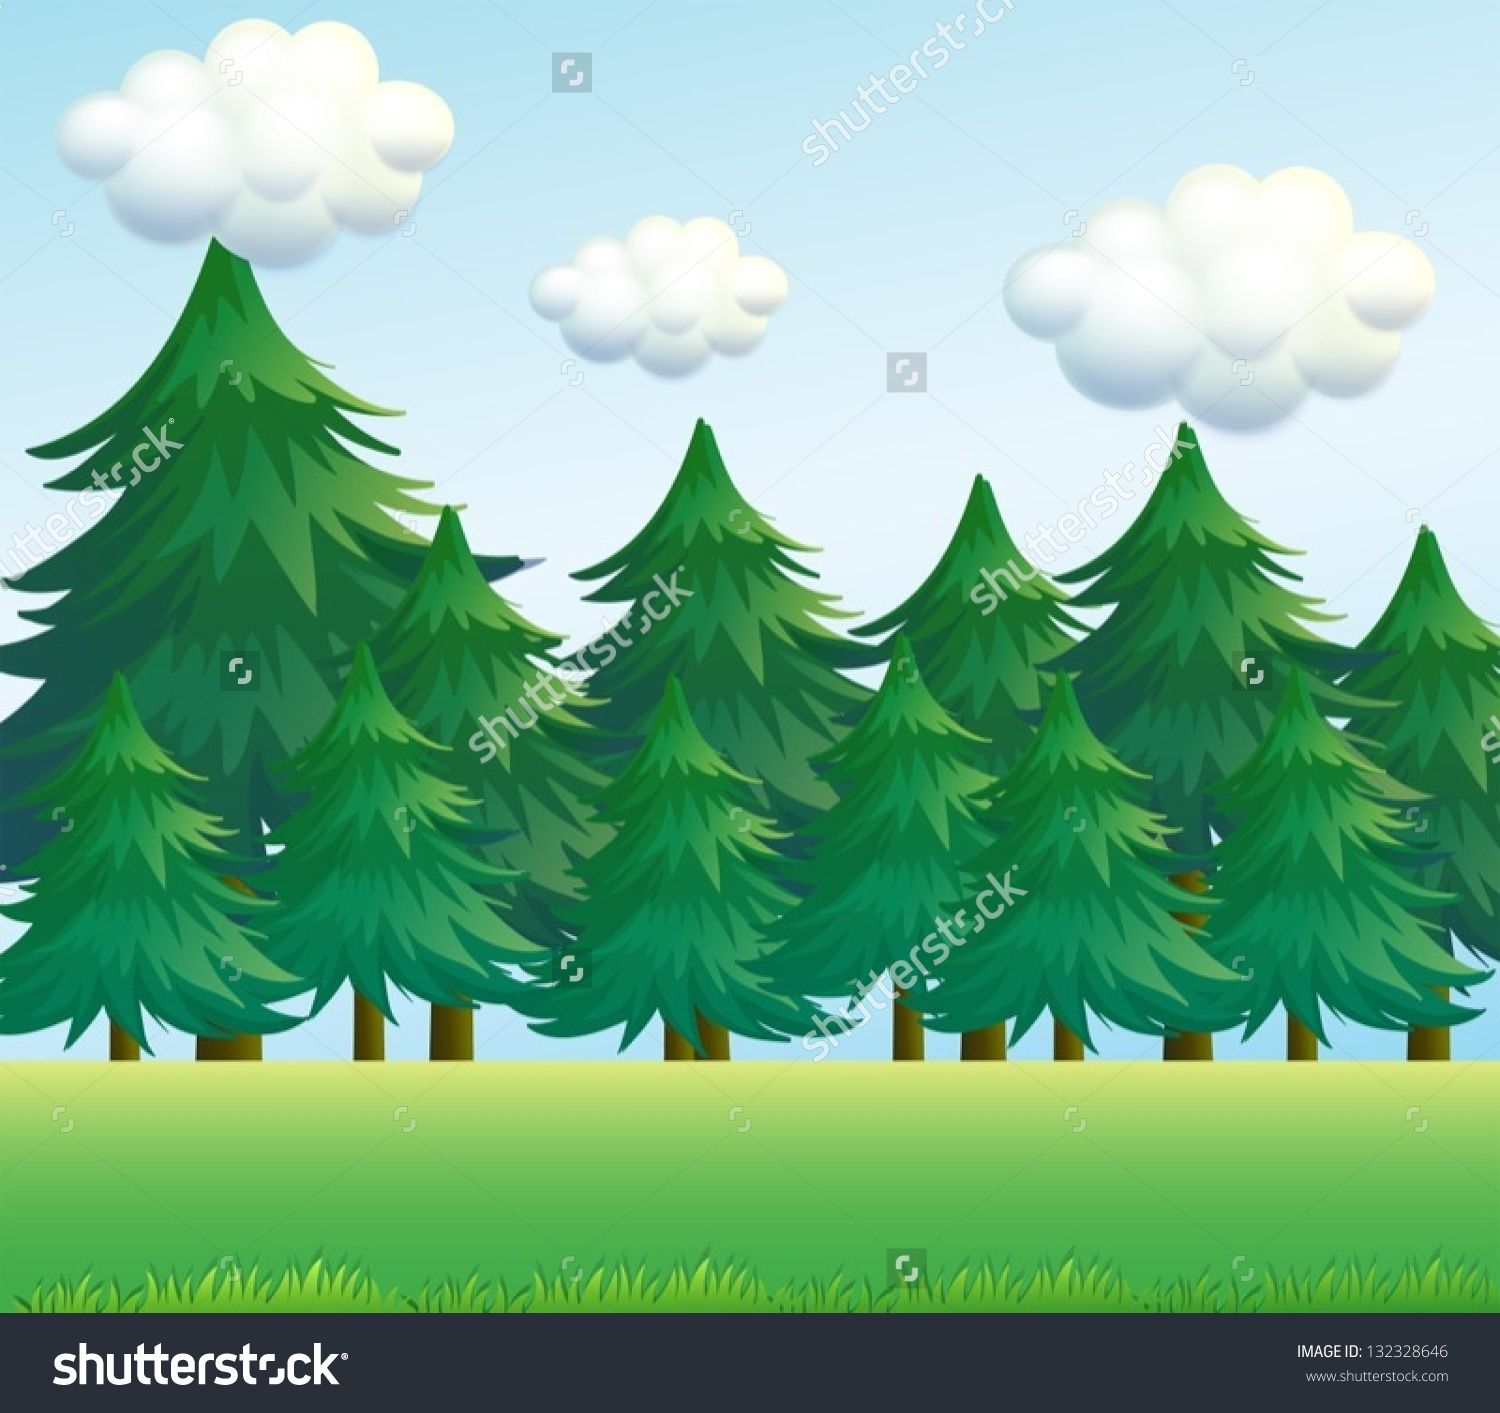 Illustration Pine Tree Scenery Stock Vector 132328646.